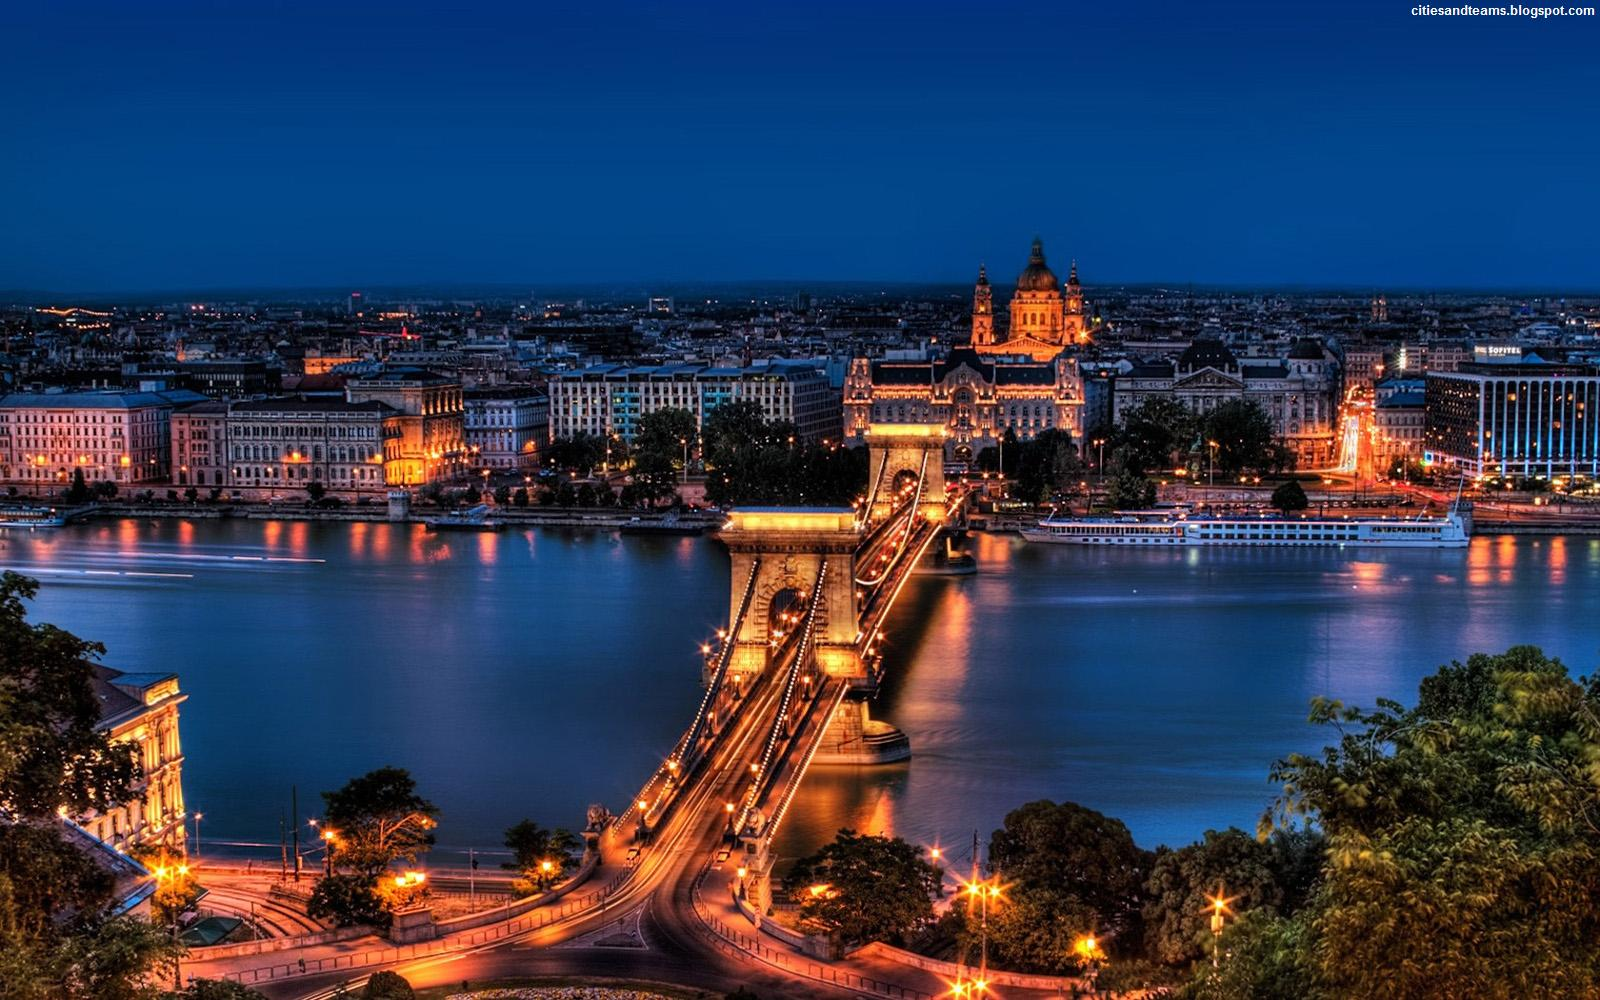 http://3.bp.blogspot.com/-xq7U0shG3Fg/UE5DJjZIfFI/AAAAAAAAHug/uZWgPCxg1Og/s1600/Budapest_Wonderful_Night_Show_Capital_City_Hungary_Hd_Desktop_Wallpaper_citiesandteams.blogspot.com.jpeg